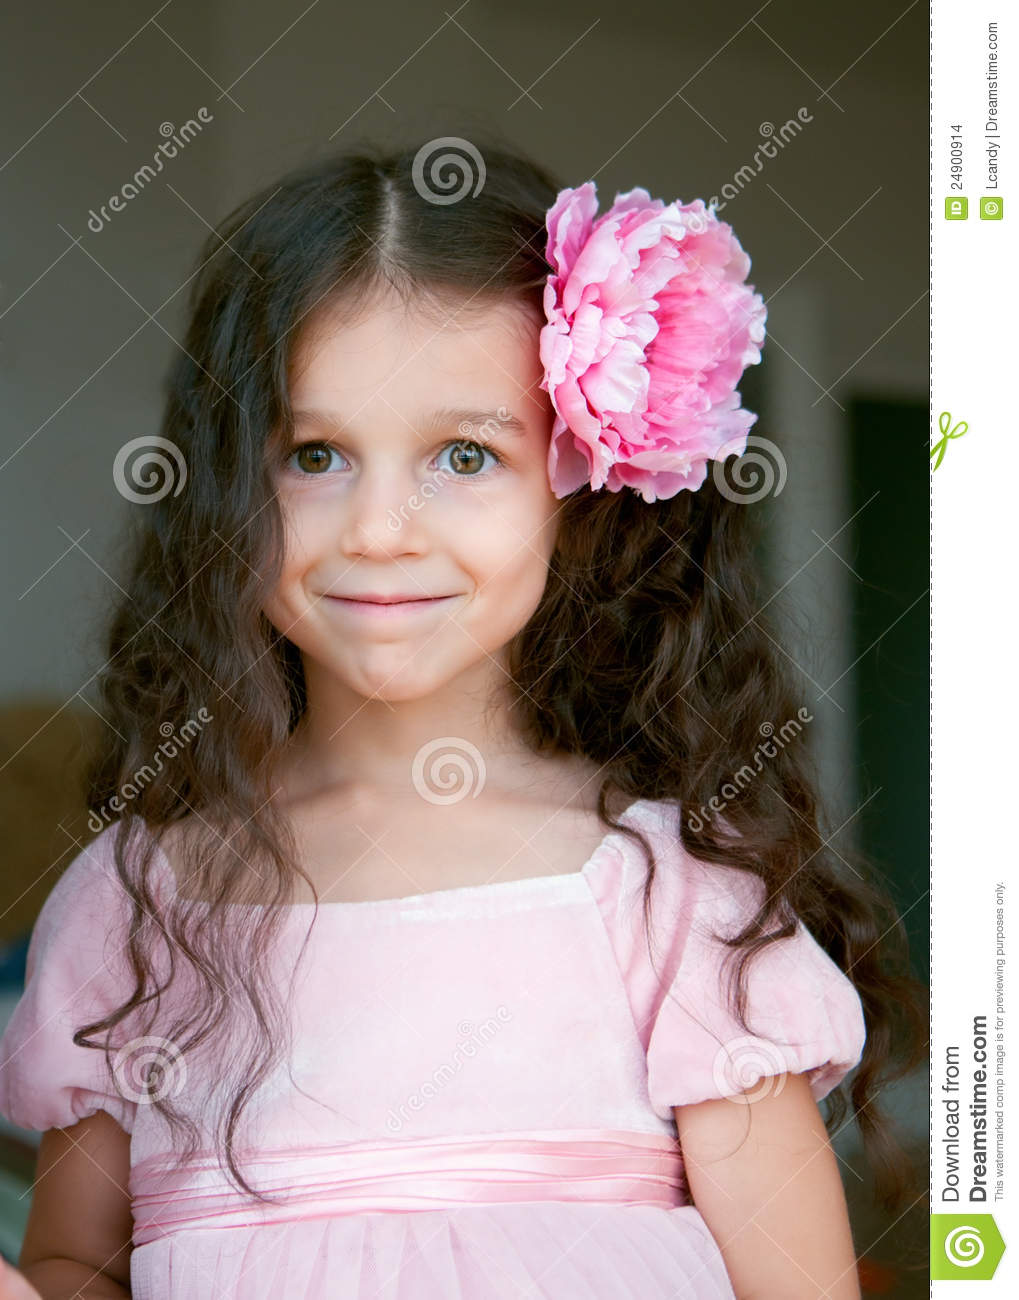 Happy Little Girl With Big Pink Flower In Hair Stock Photo Image